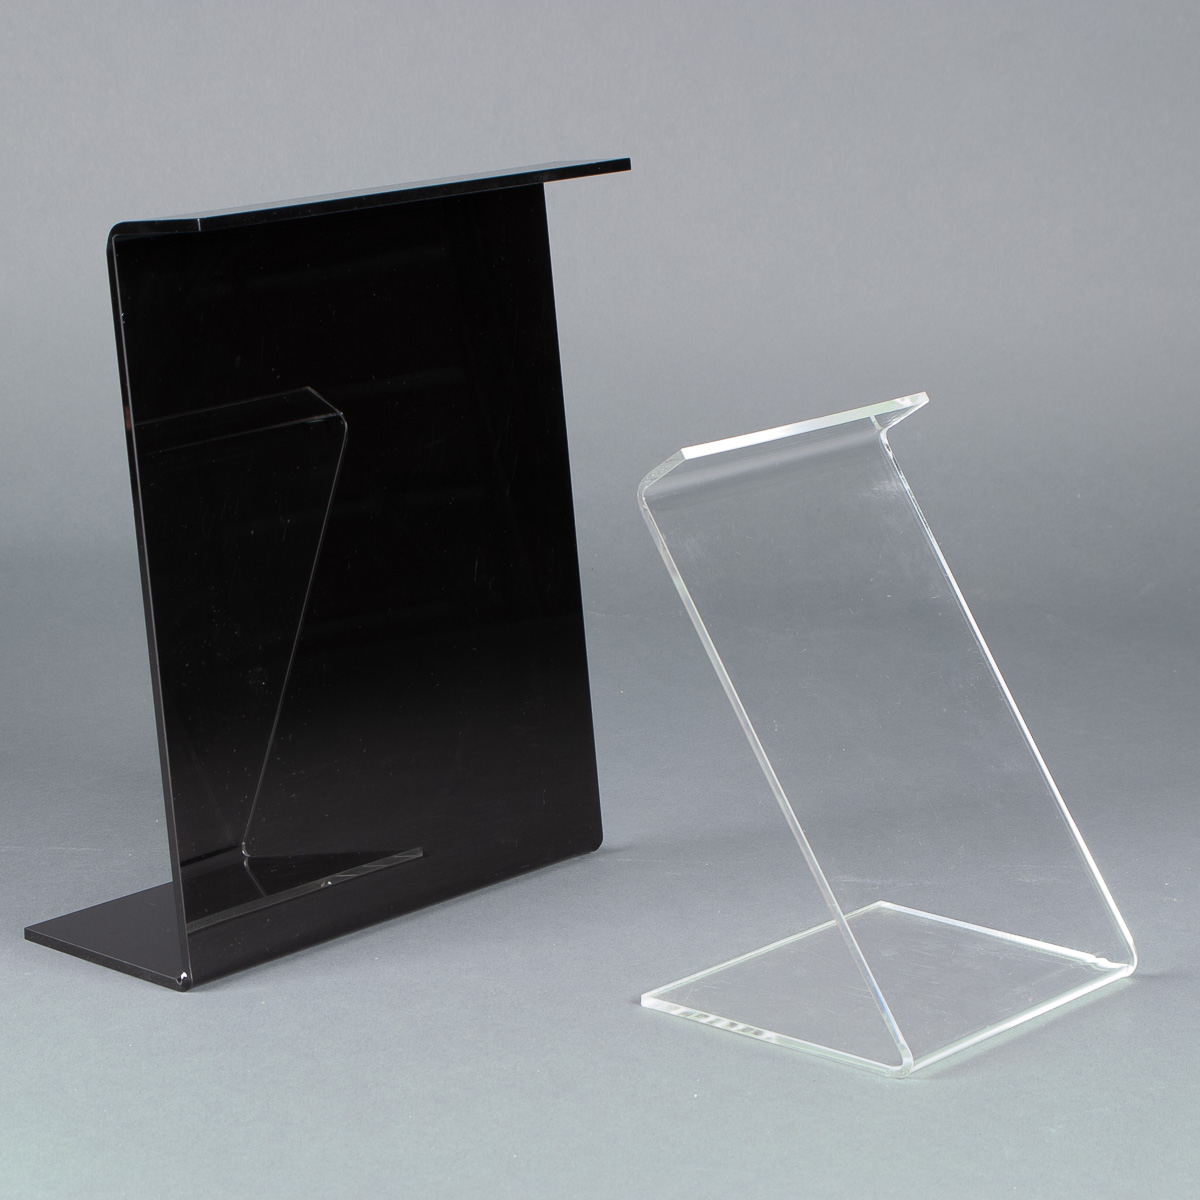 Literature holders manufactured by Lustercraft